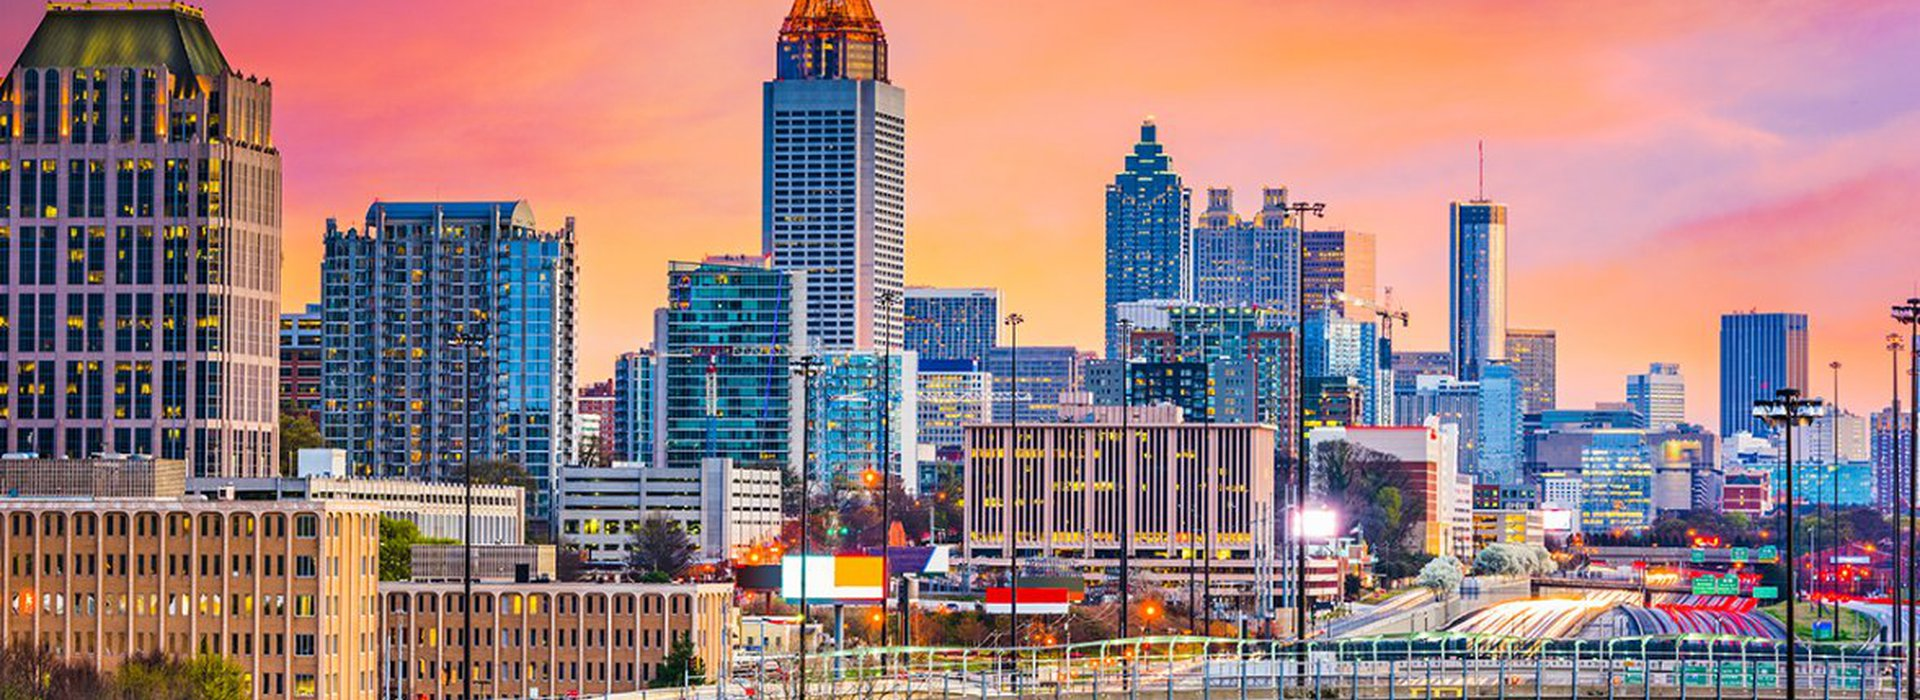 Atlanta, Georgia, USA downtown skyline at dawn.